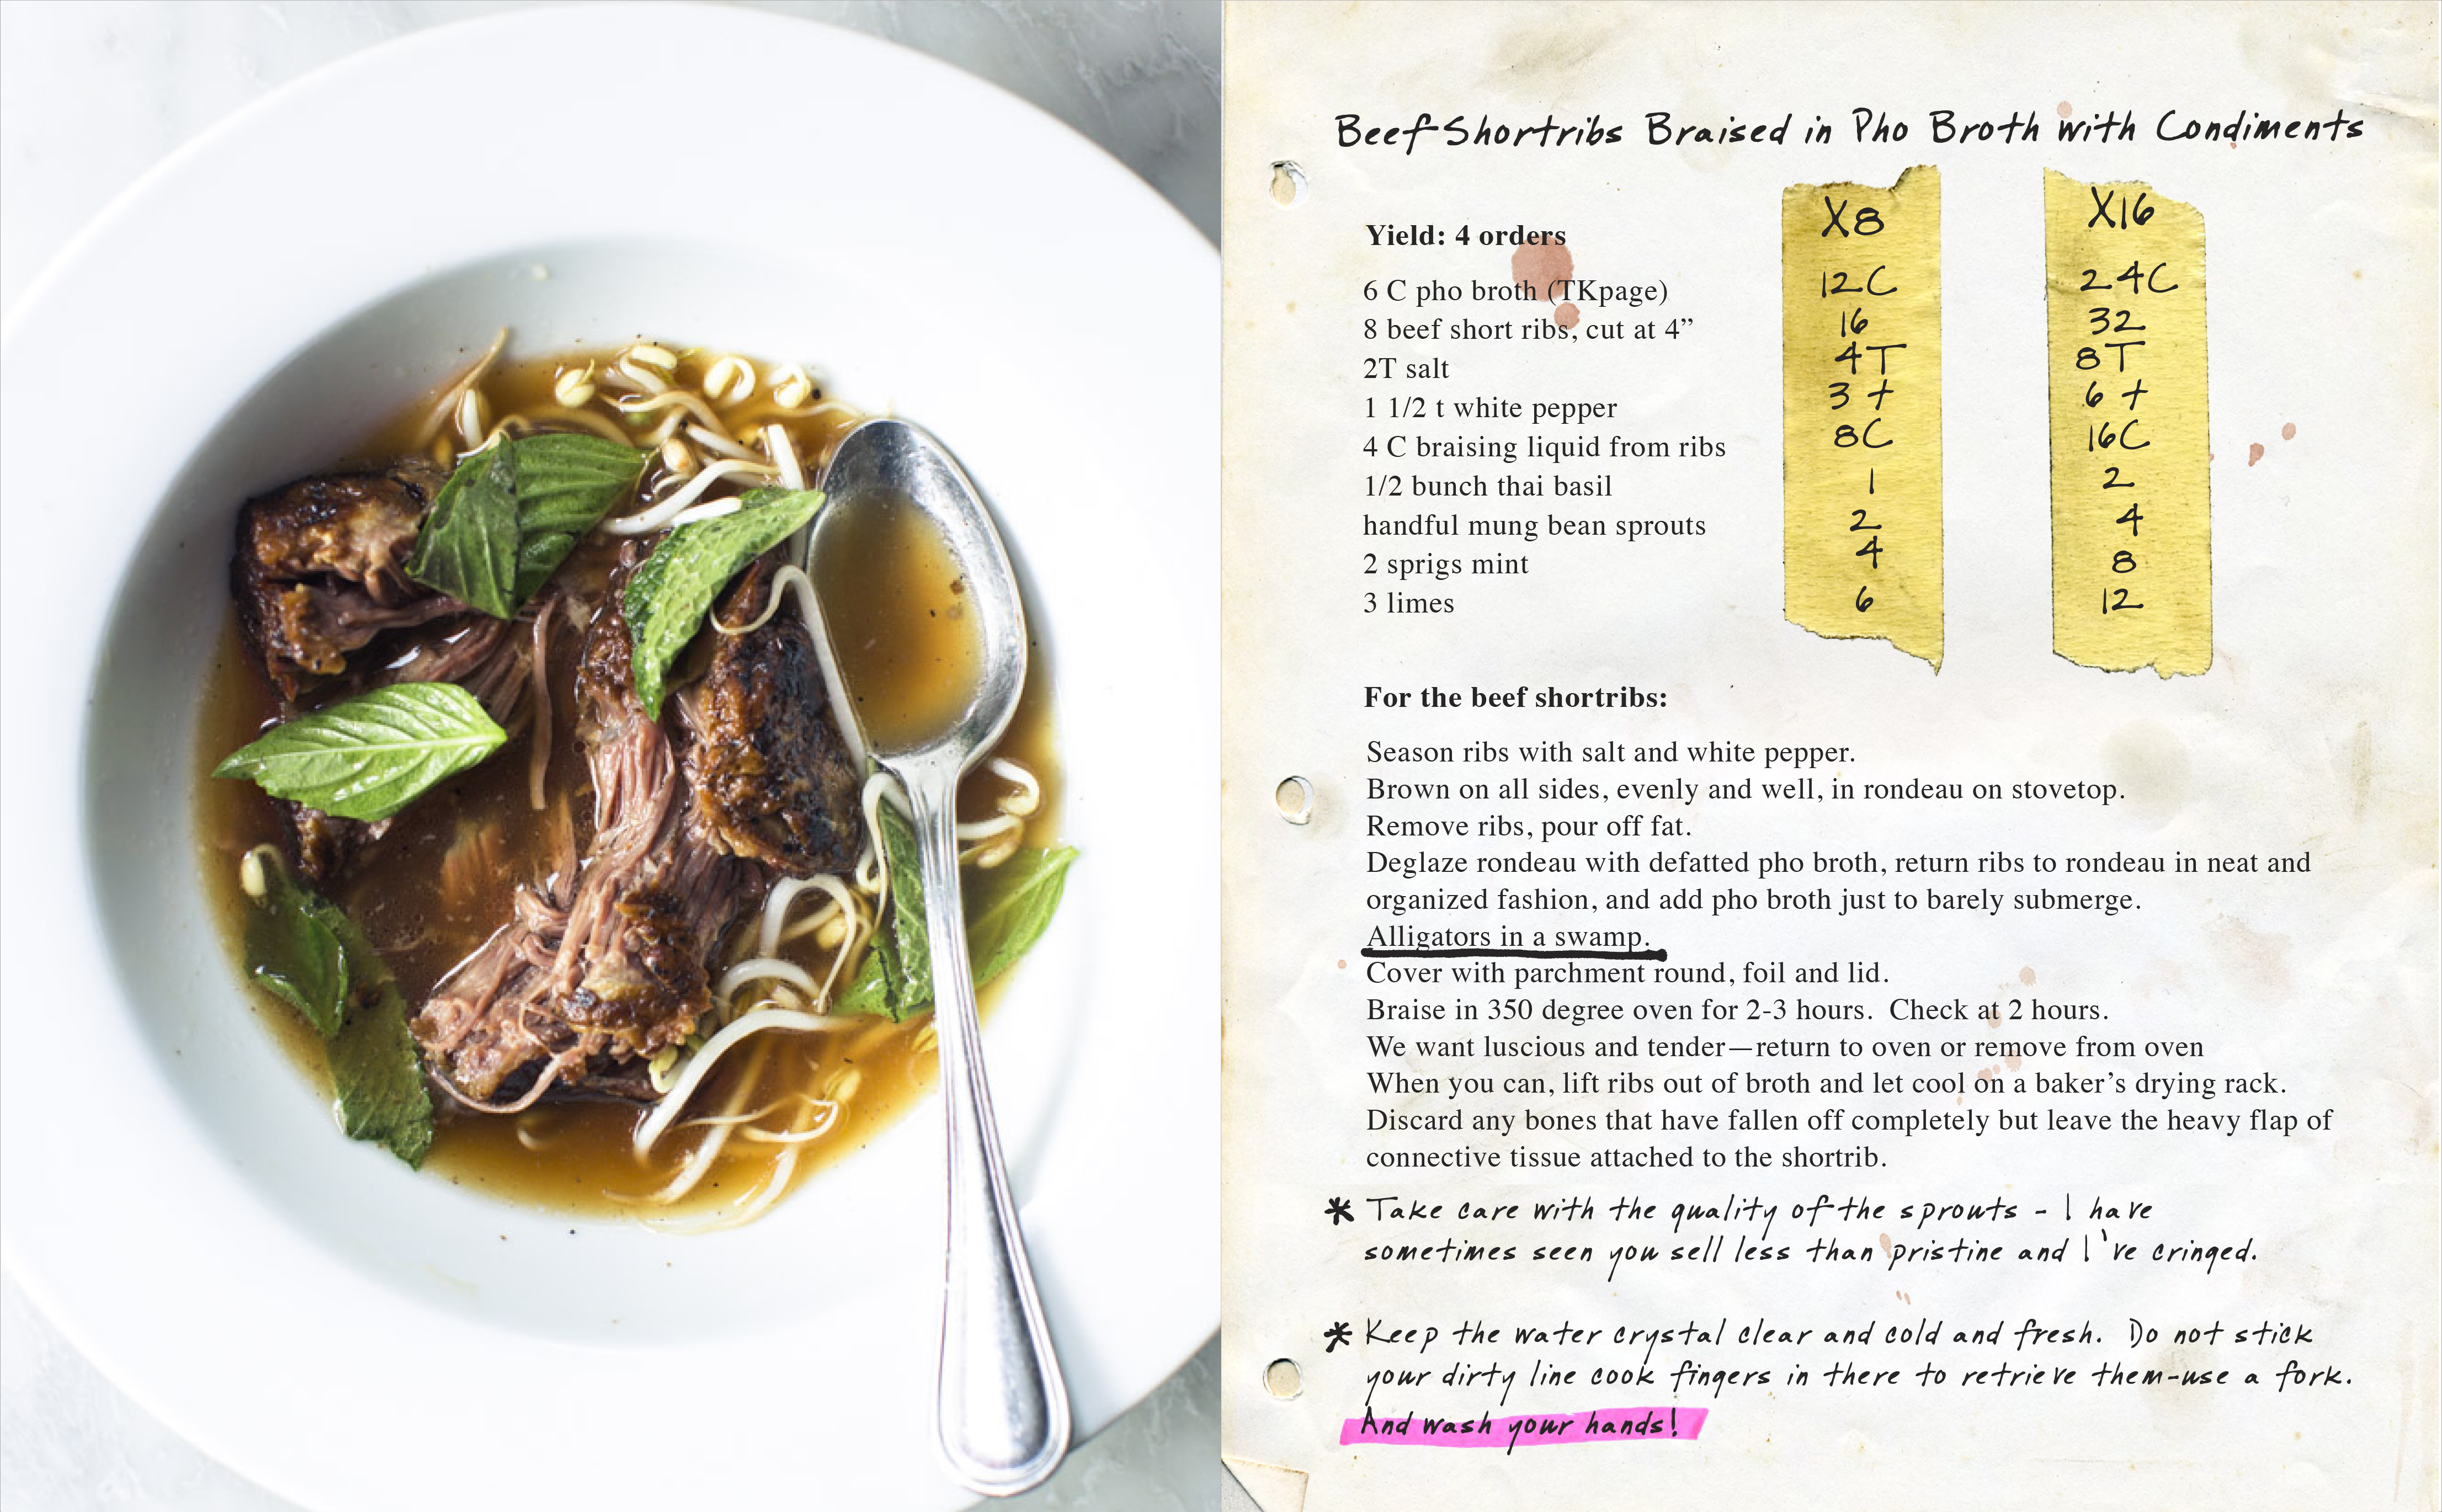 Reading eating penguin random house gabrielle hamilton blood bones and butter the inadvertent education of a reluctant chef forumfinder Image collections